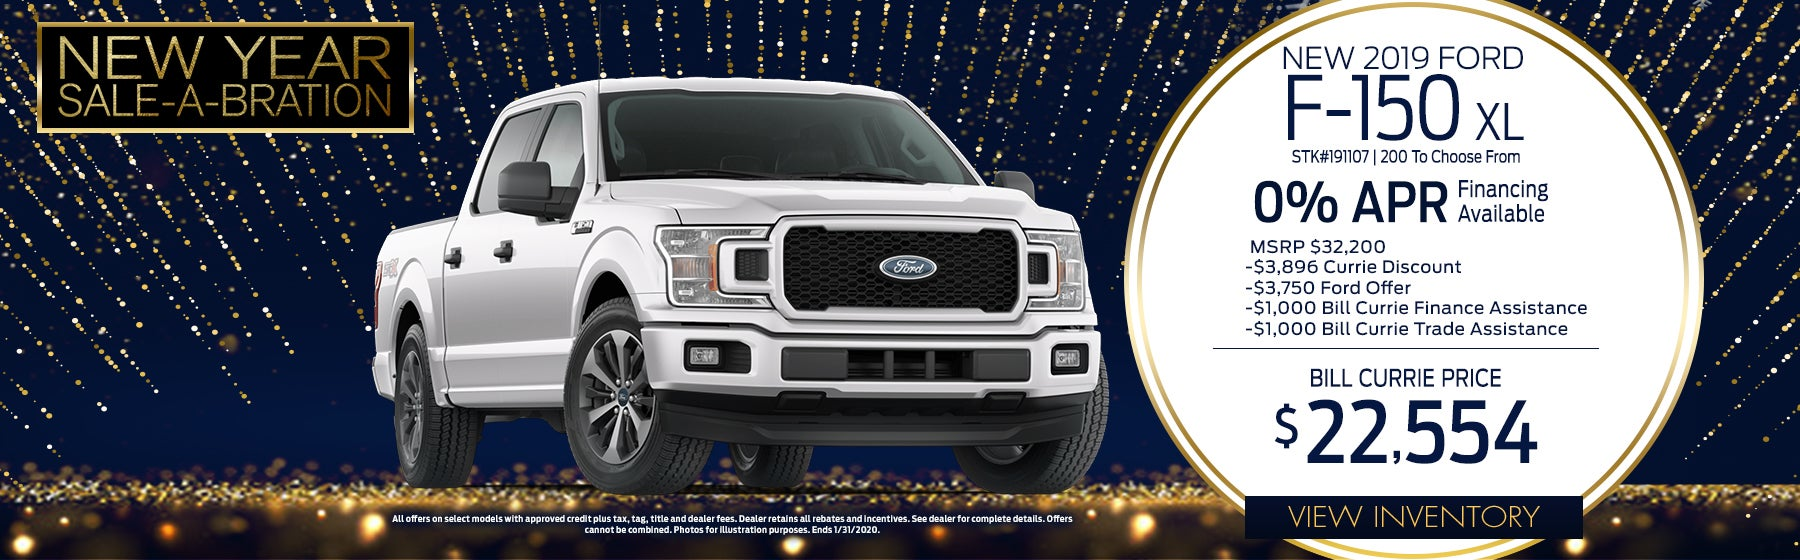 Ford Dealership Tampa >> Bill Currie Ford New Used Ford Dealership In Tampa Fl